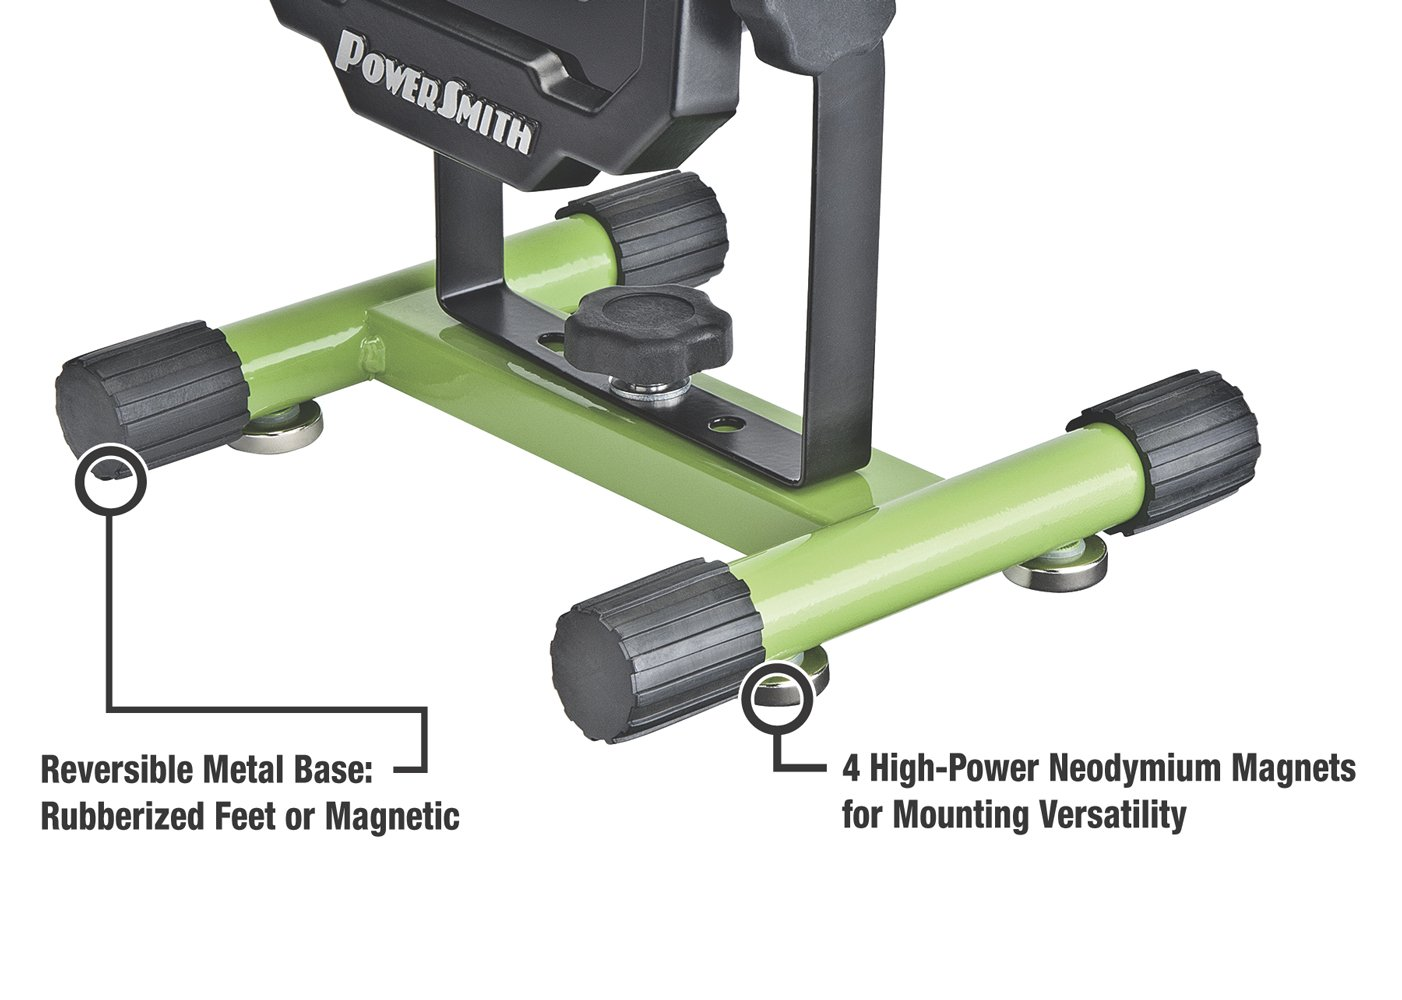 PowerSmith PWLR1110M 900 Lumens Magnet Base with Rechargeable Lithium Ion Battery Portable Work Light with Charger & Metal Stand by POWERSMITH (Image #2)